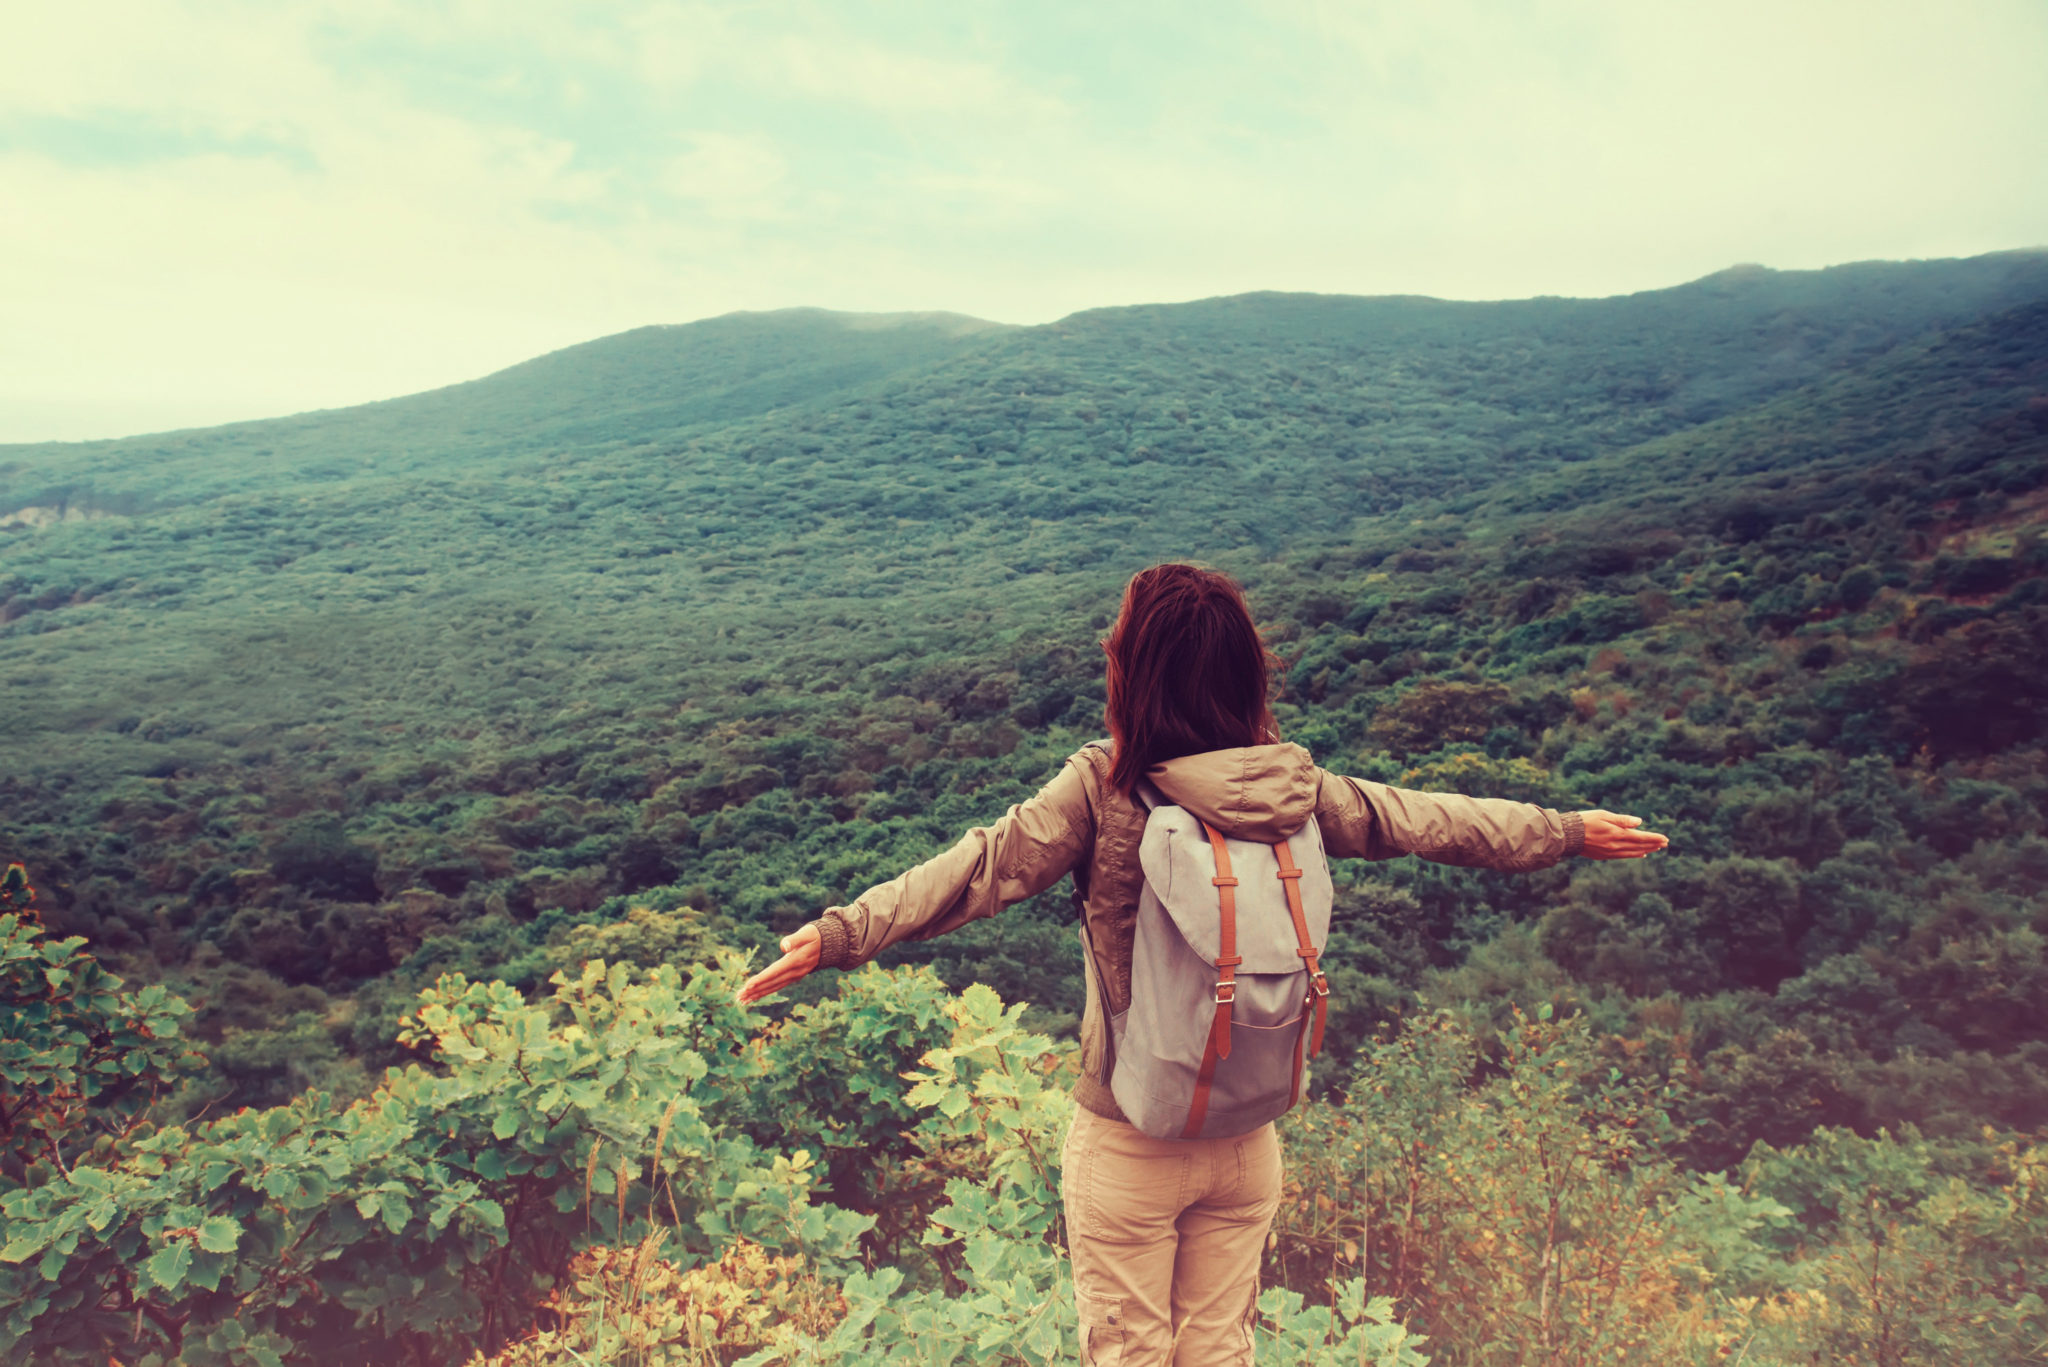 Travel teaches you what authenticity feels like